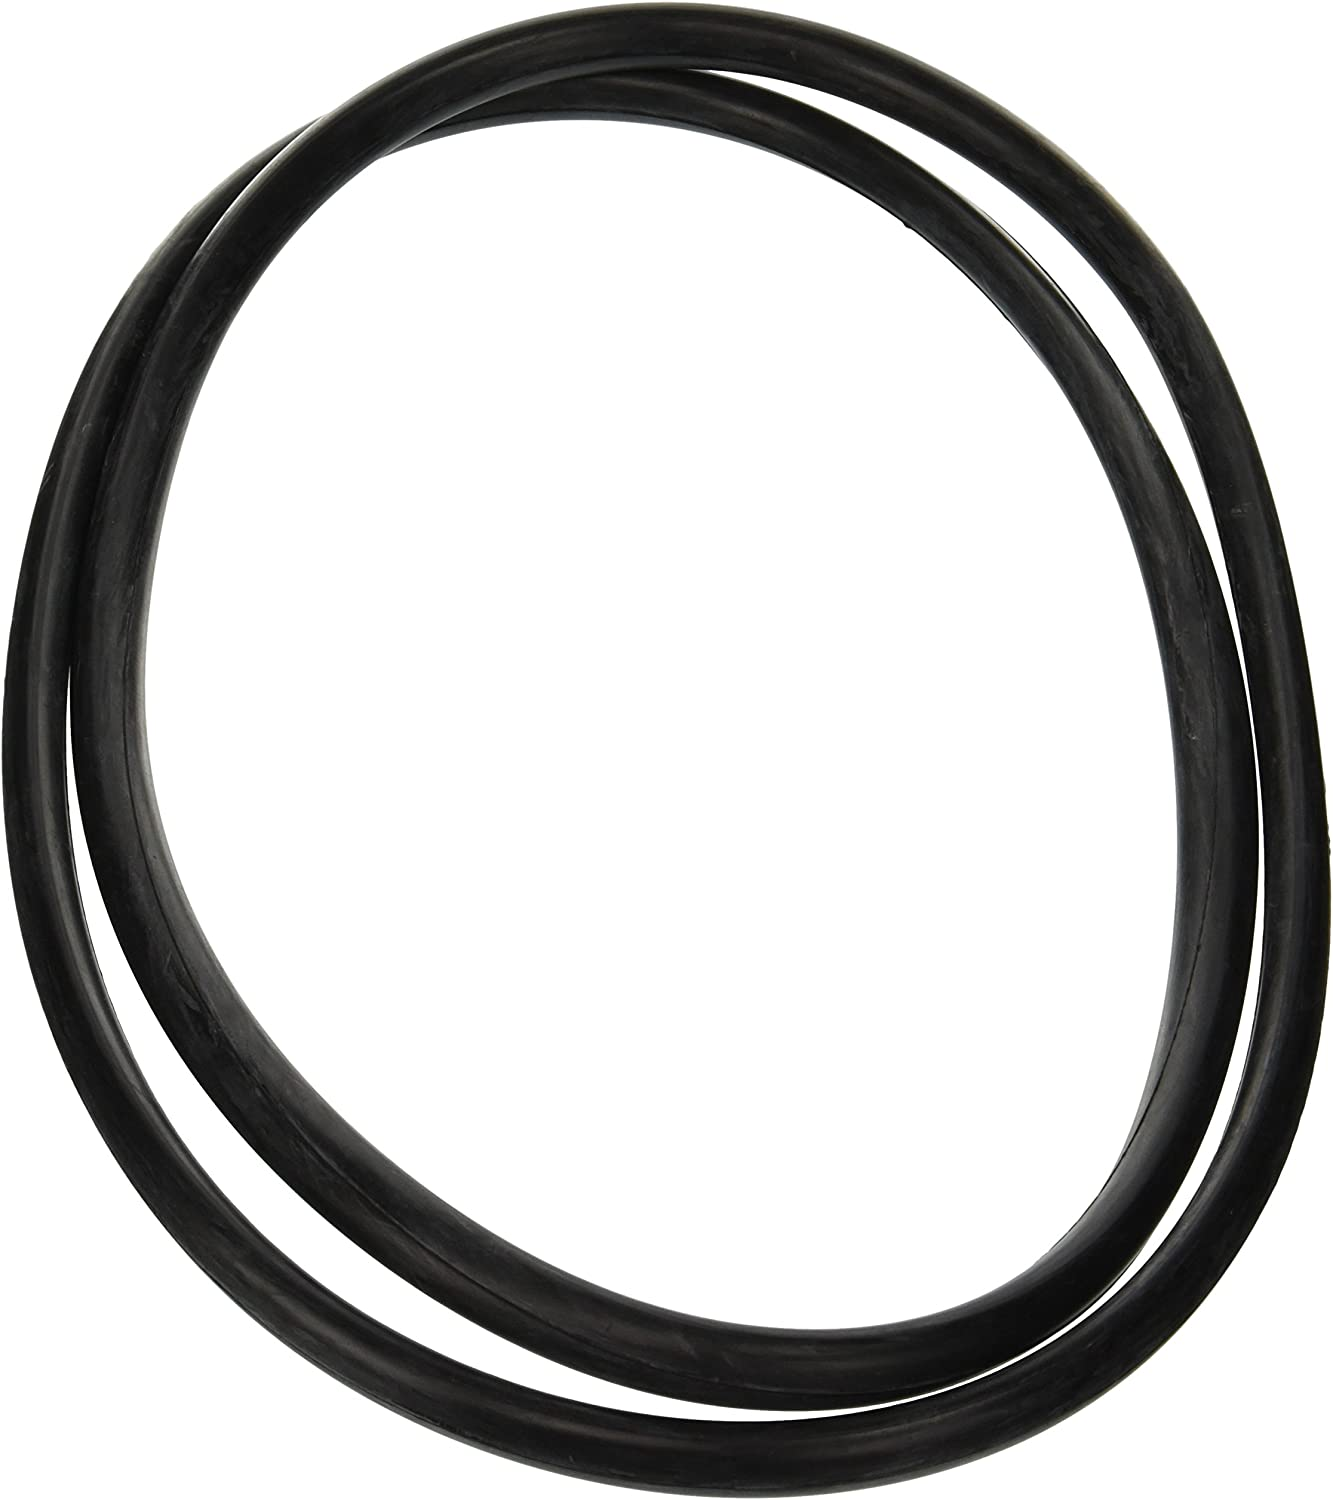 Zodiac R0357800 Tank O-Ring Replacement for Select Zodiac D.E. and Cartridge Pool and Spa Filters